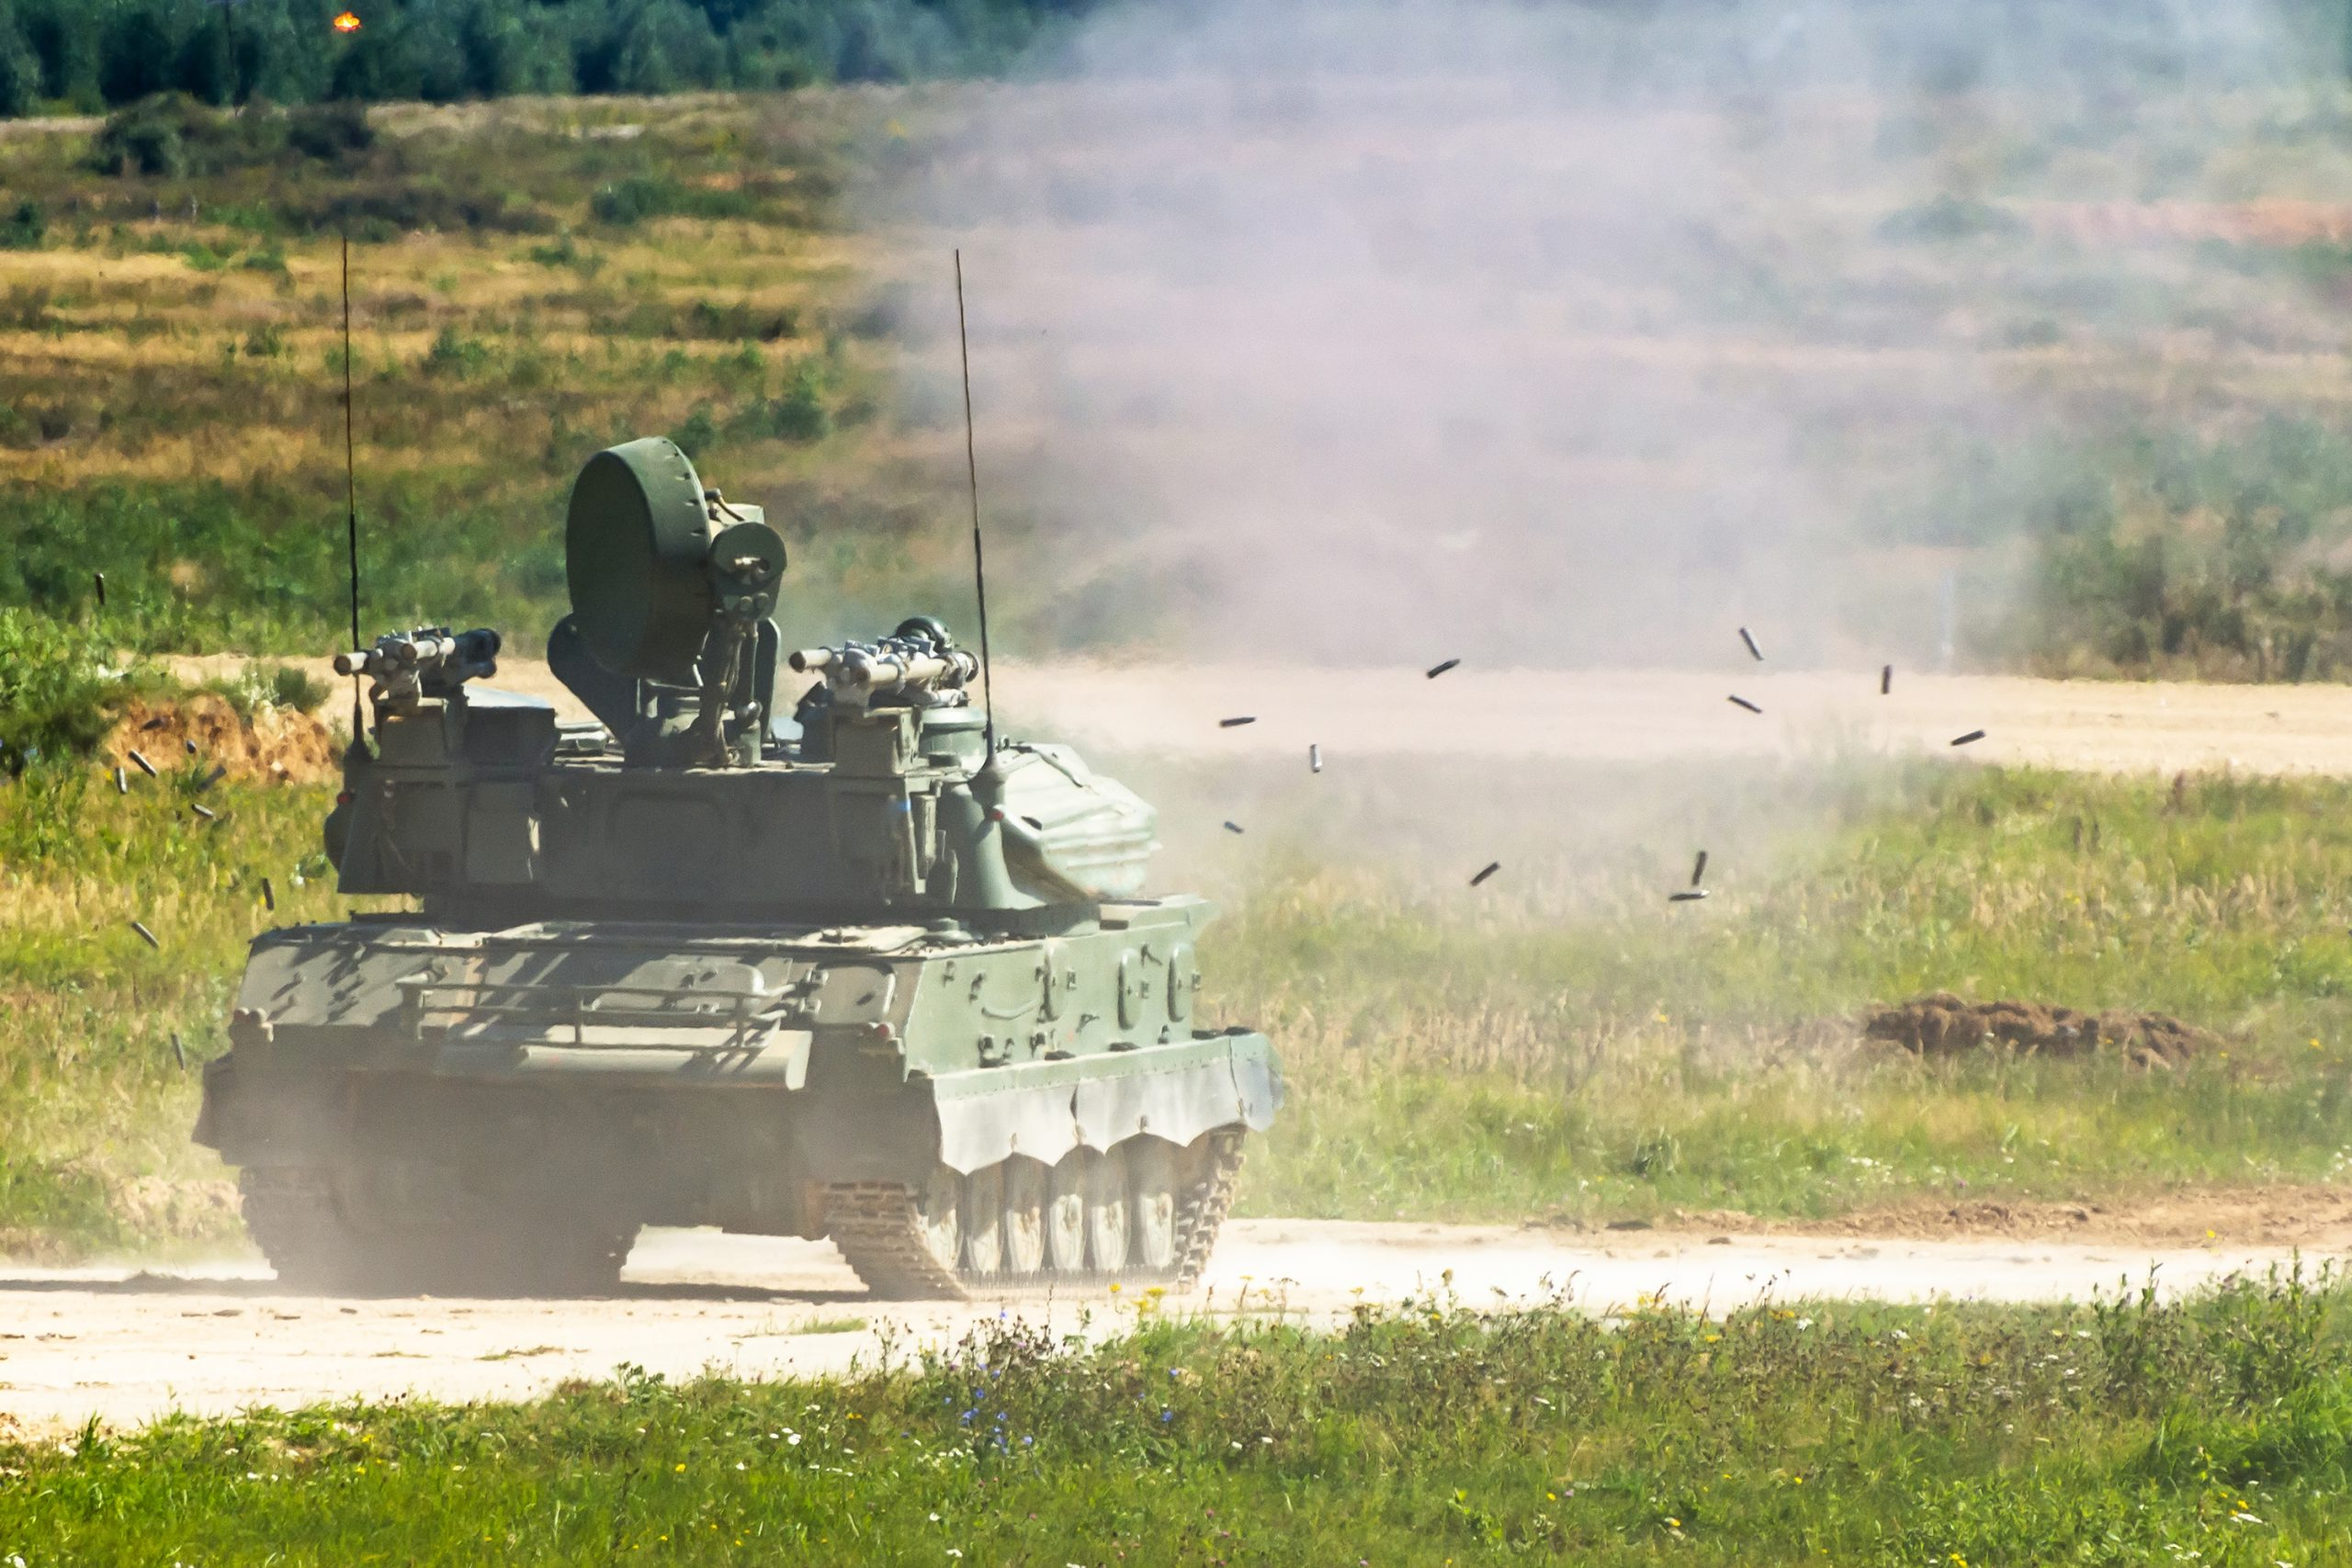 Shooting armored personnel carrier on the field during military operations. The falling lysis from the cartridges is seen.